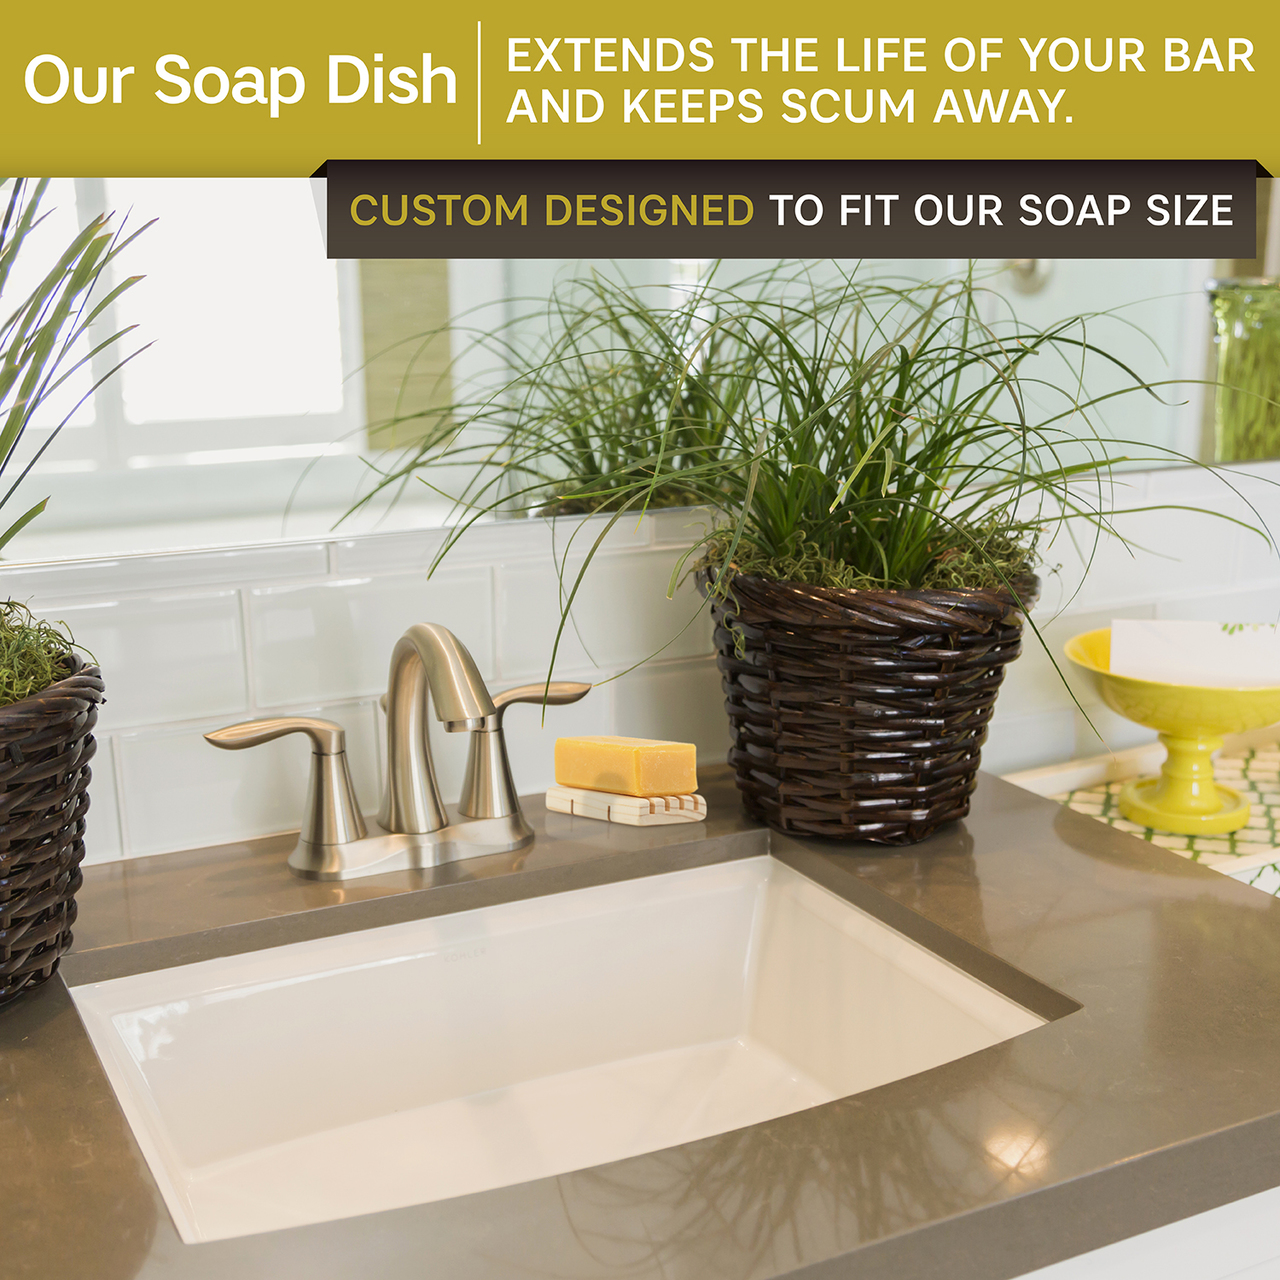 2 Pack Wood Soap Dish Holder with Soap Bars, 100% Natural Pine, No Chemical Varnish, Lacquer or Stain is Used, Custom Made to Fit Our Soaps Exactly